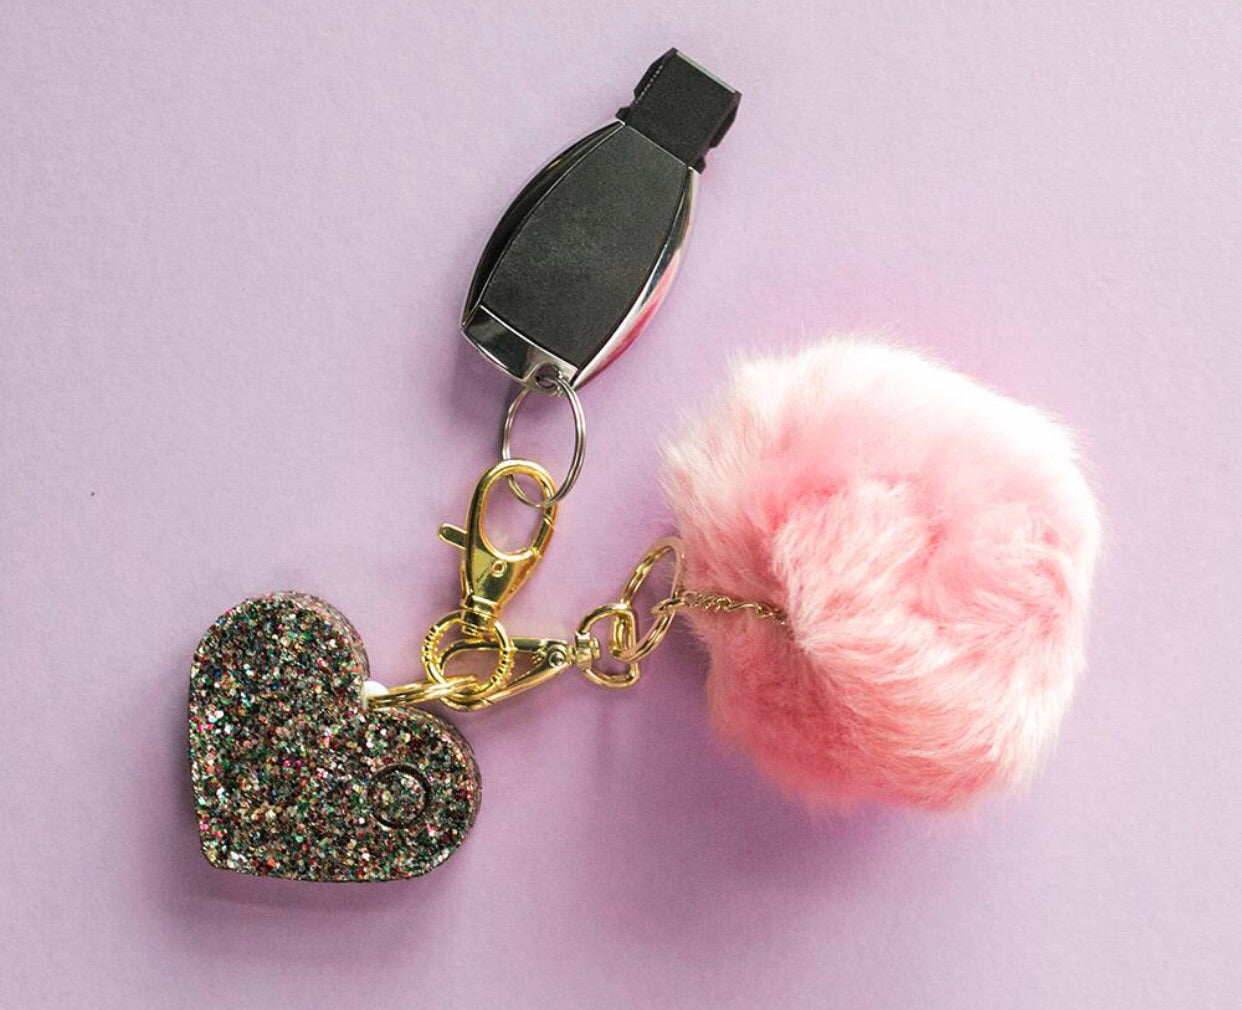 confetti heart safety alarm from bling sting